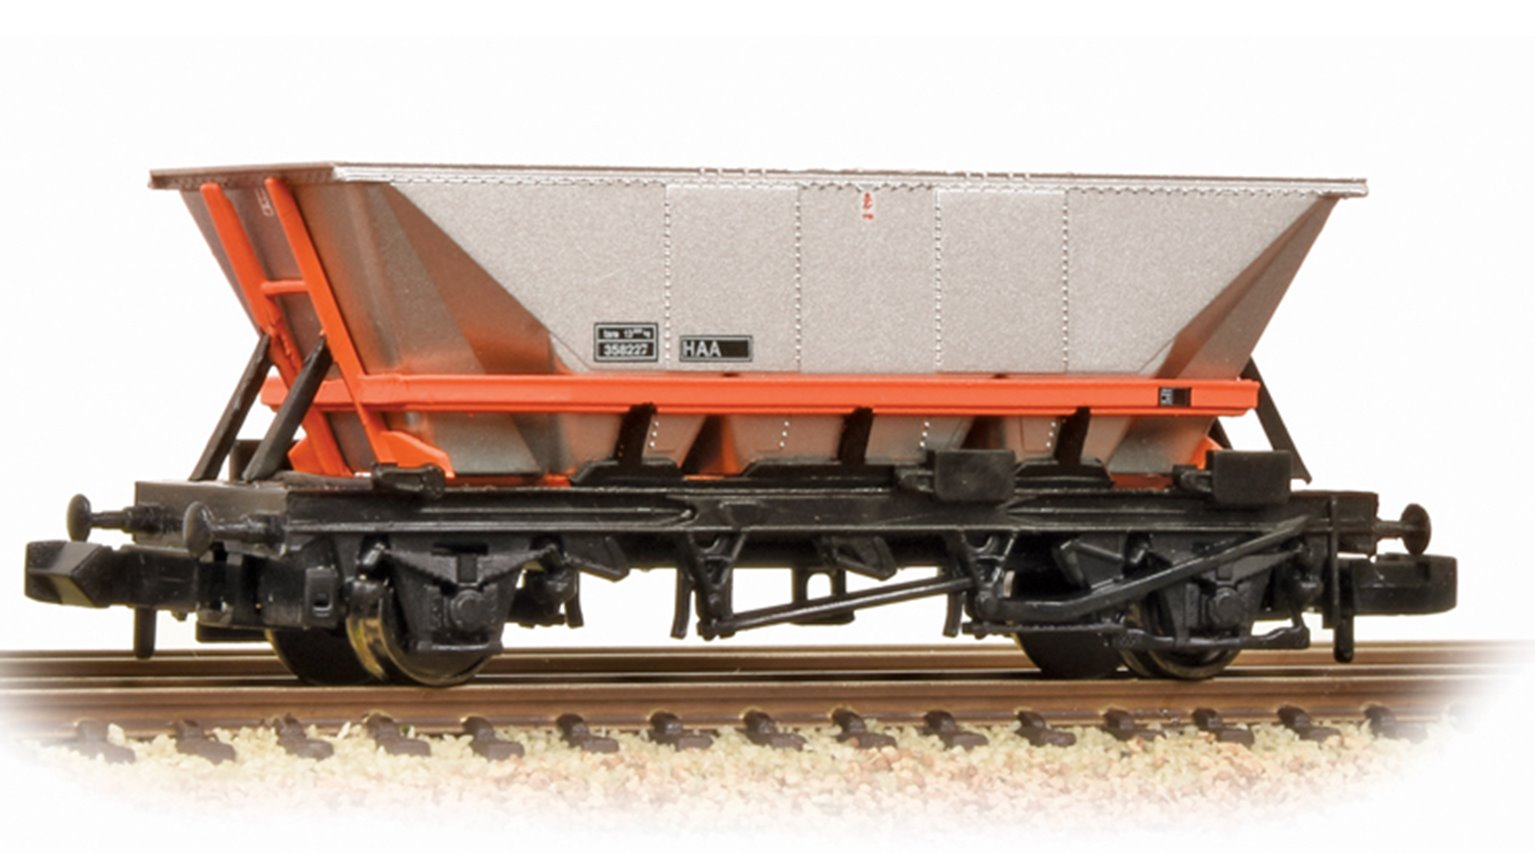 46 Tonne glw HAA Hopper BR Railfreight(Price is estimated - we will notify you if price rises and offer option to cancel)